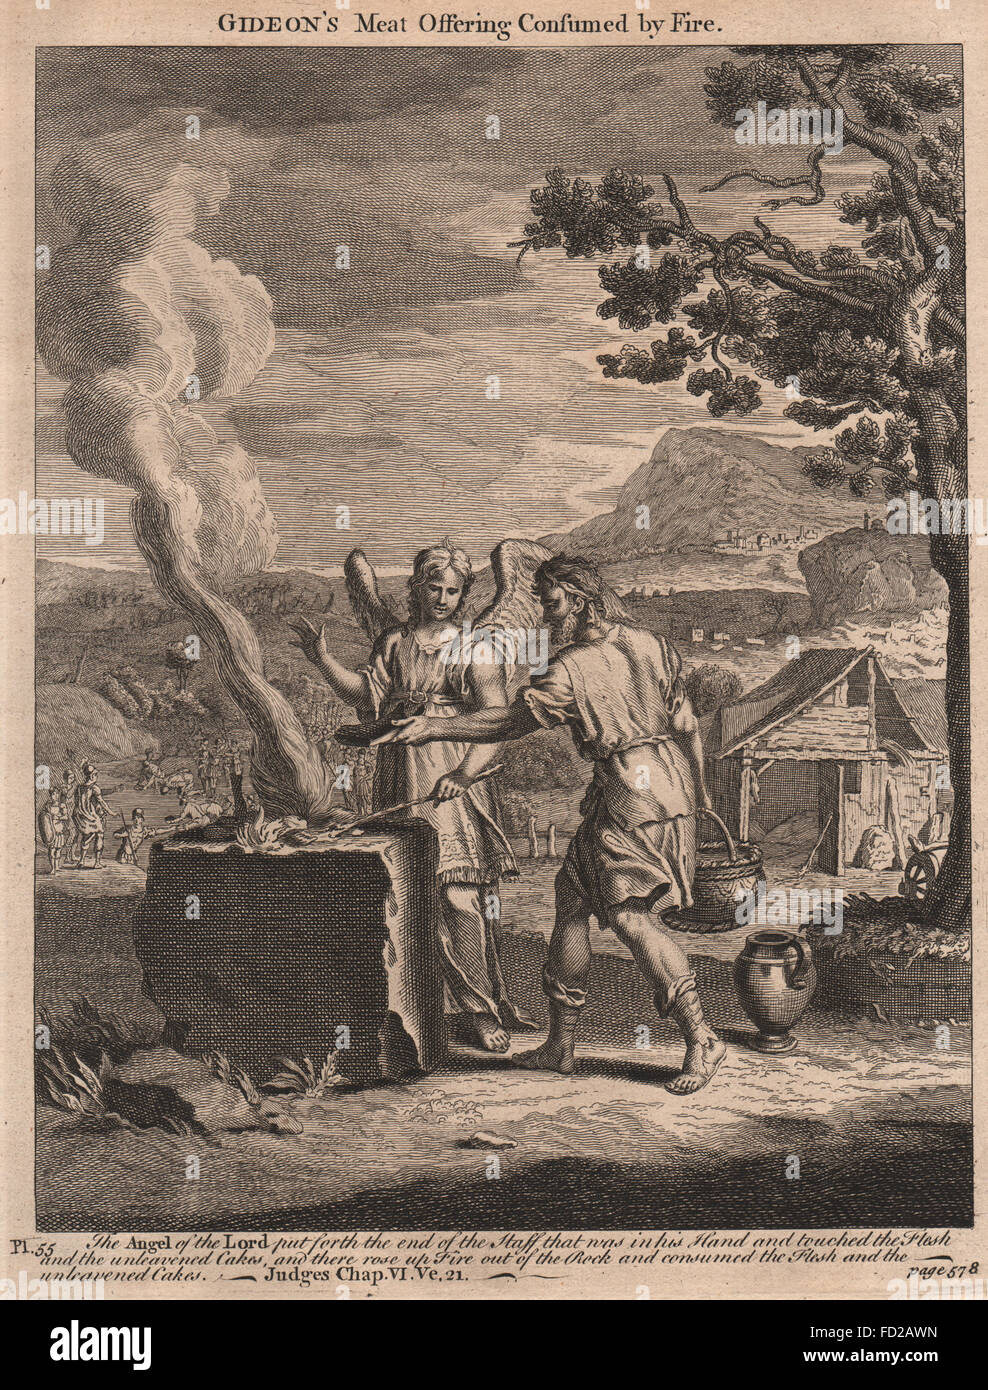 BIBLE: Judges 6:21 Gideon's meat offering consumed by fire, antique print 1752 - Stock Image